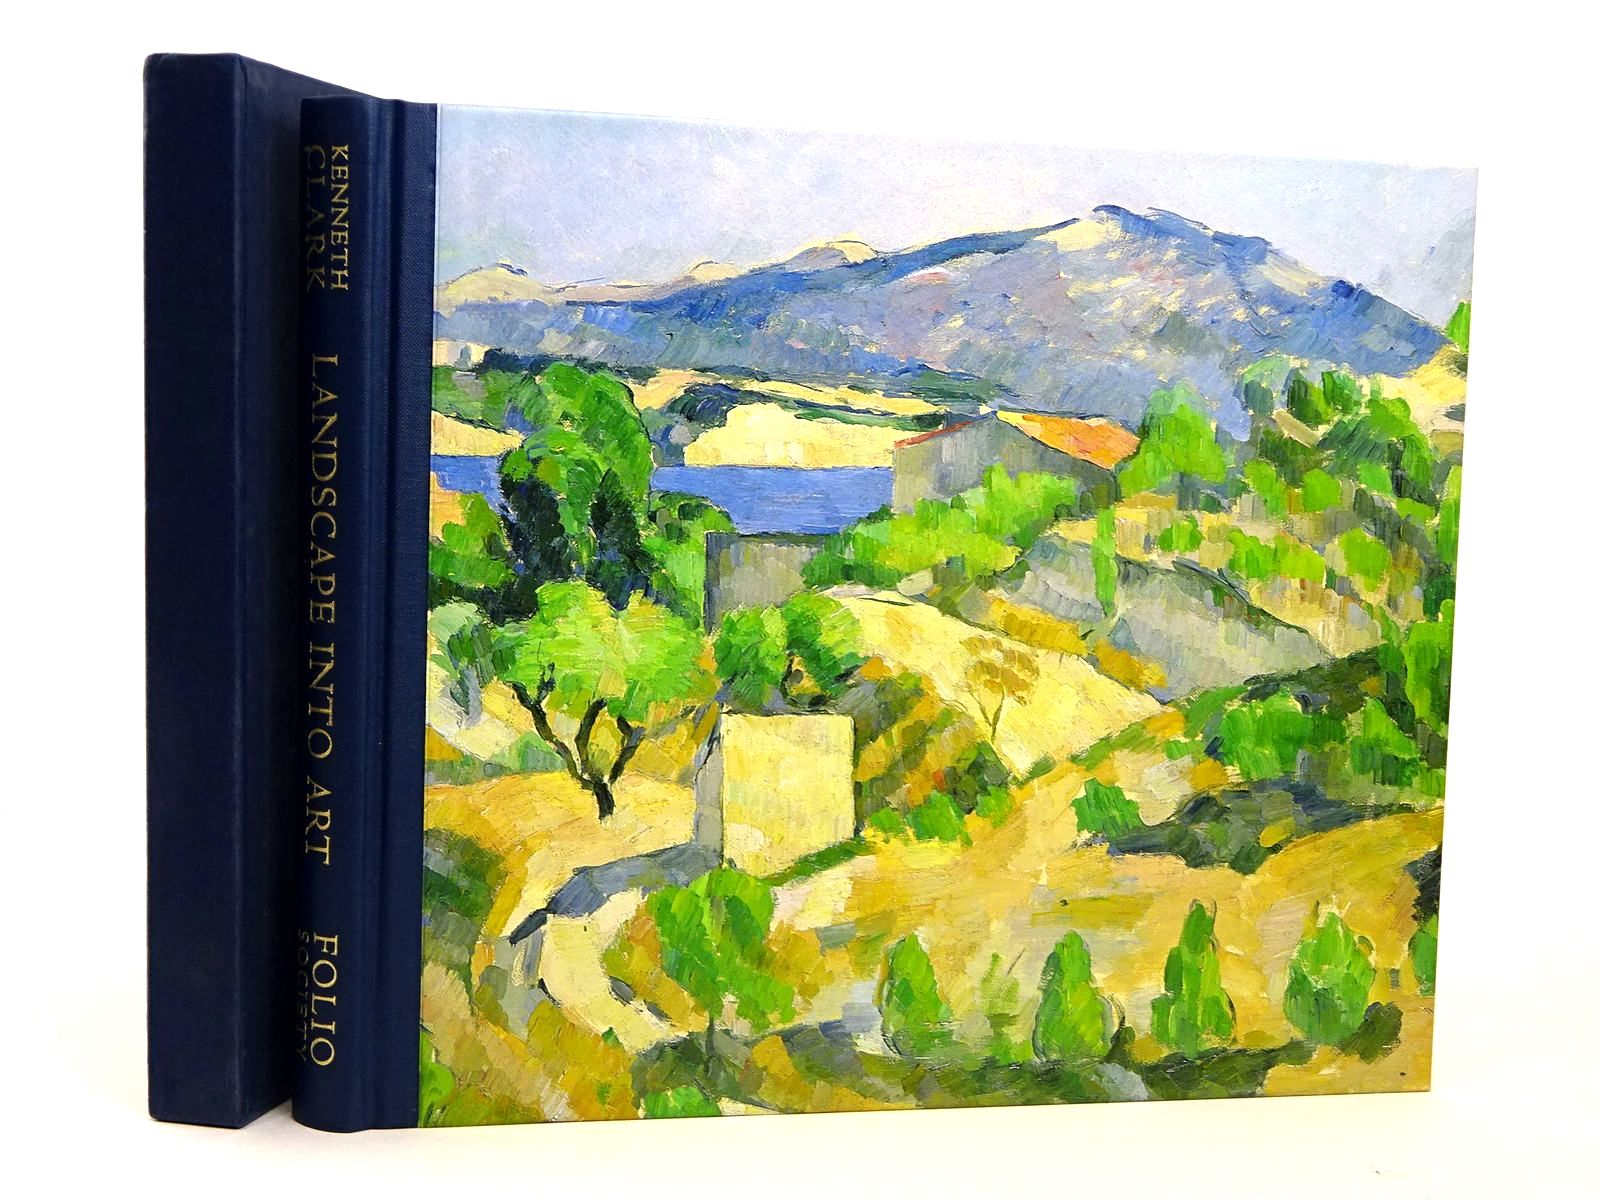 Photo of LANDSCAPE INTO ART written by Clark, Kenneth published by Folio Society (STOCK CODE: 1818656)  for sale by Stella & Rose's Books